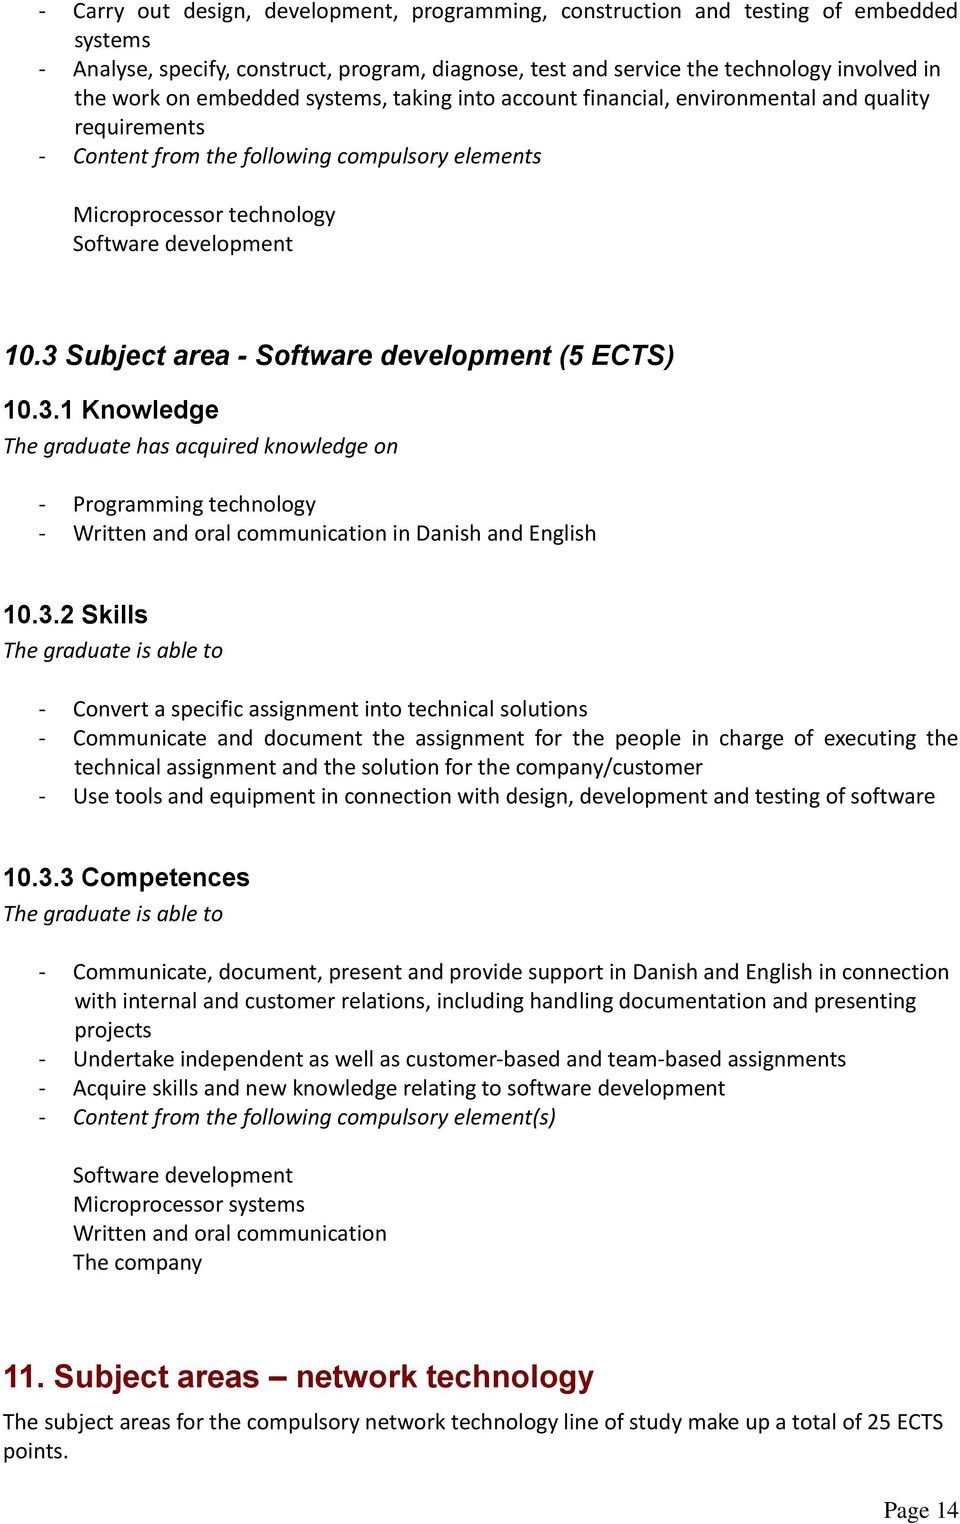 3 Subject area - Software development (5 ECTS) 10.3.1 Knowledge The graduate has acquired knowledge on - Programming technology - Written and oral communication in Danish and English 10.3.2 Skills